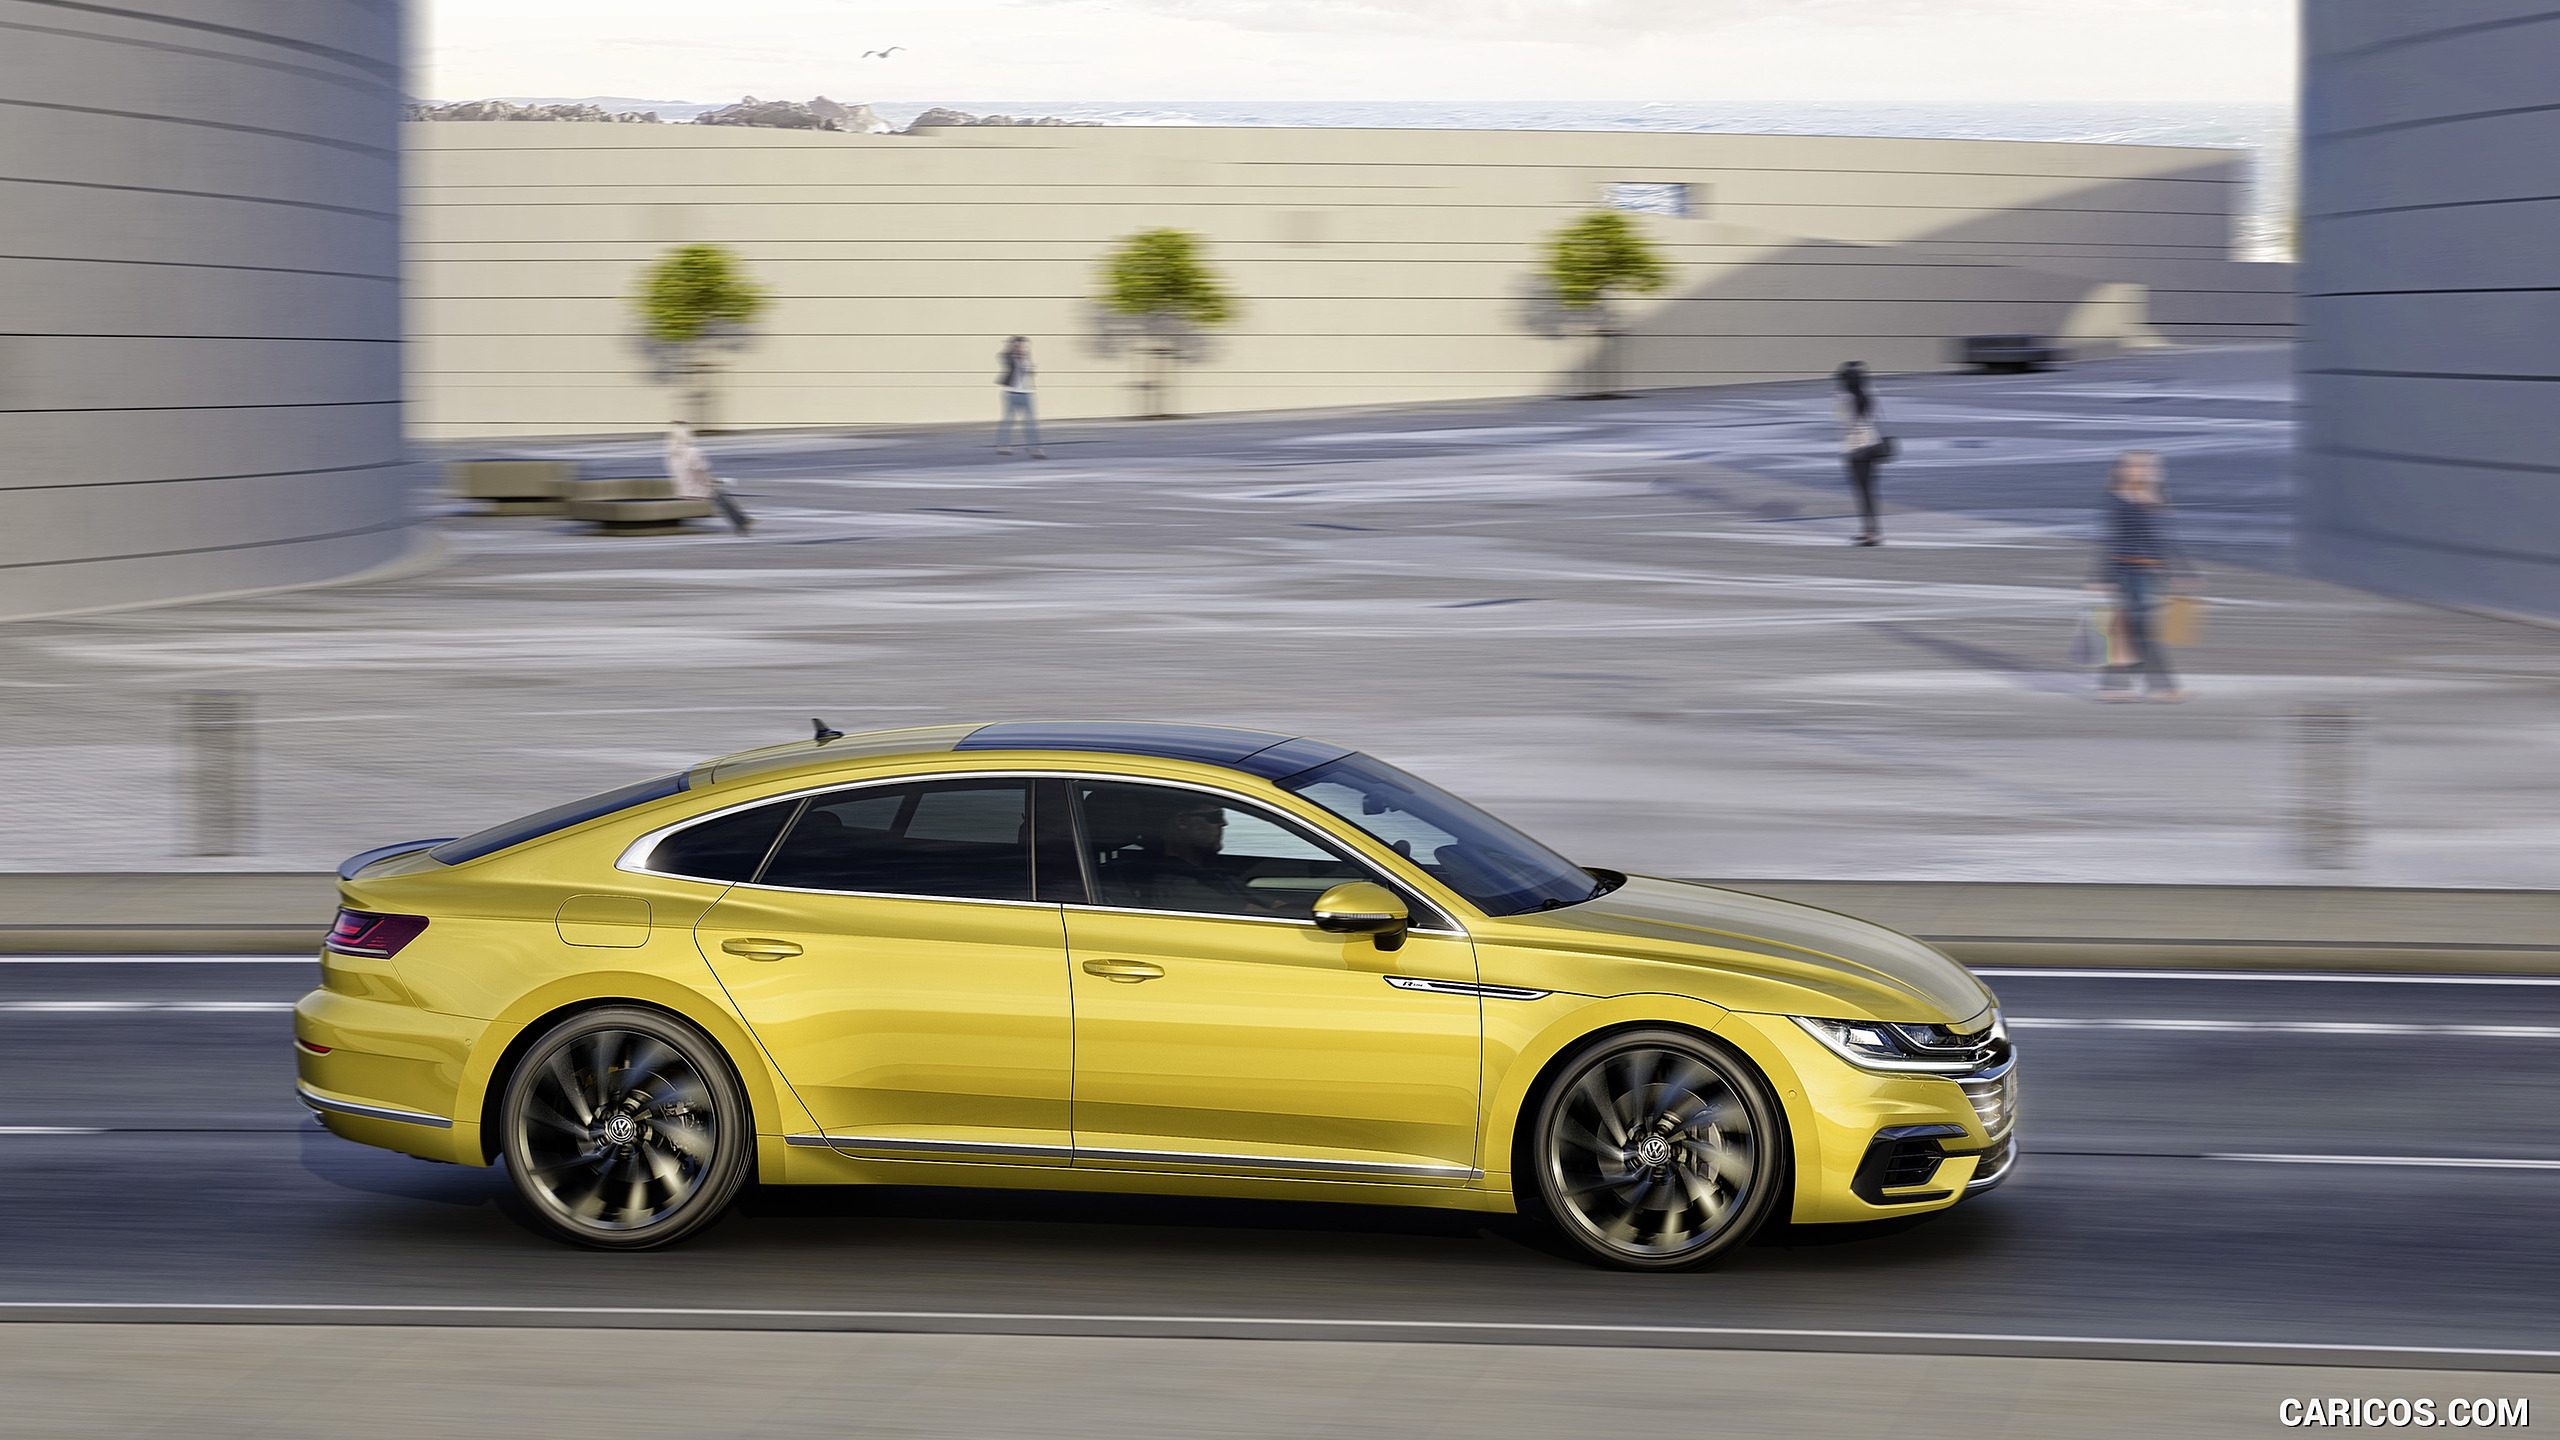 2560x1440 - Volkswagen Arteon Wallpapers 2